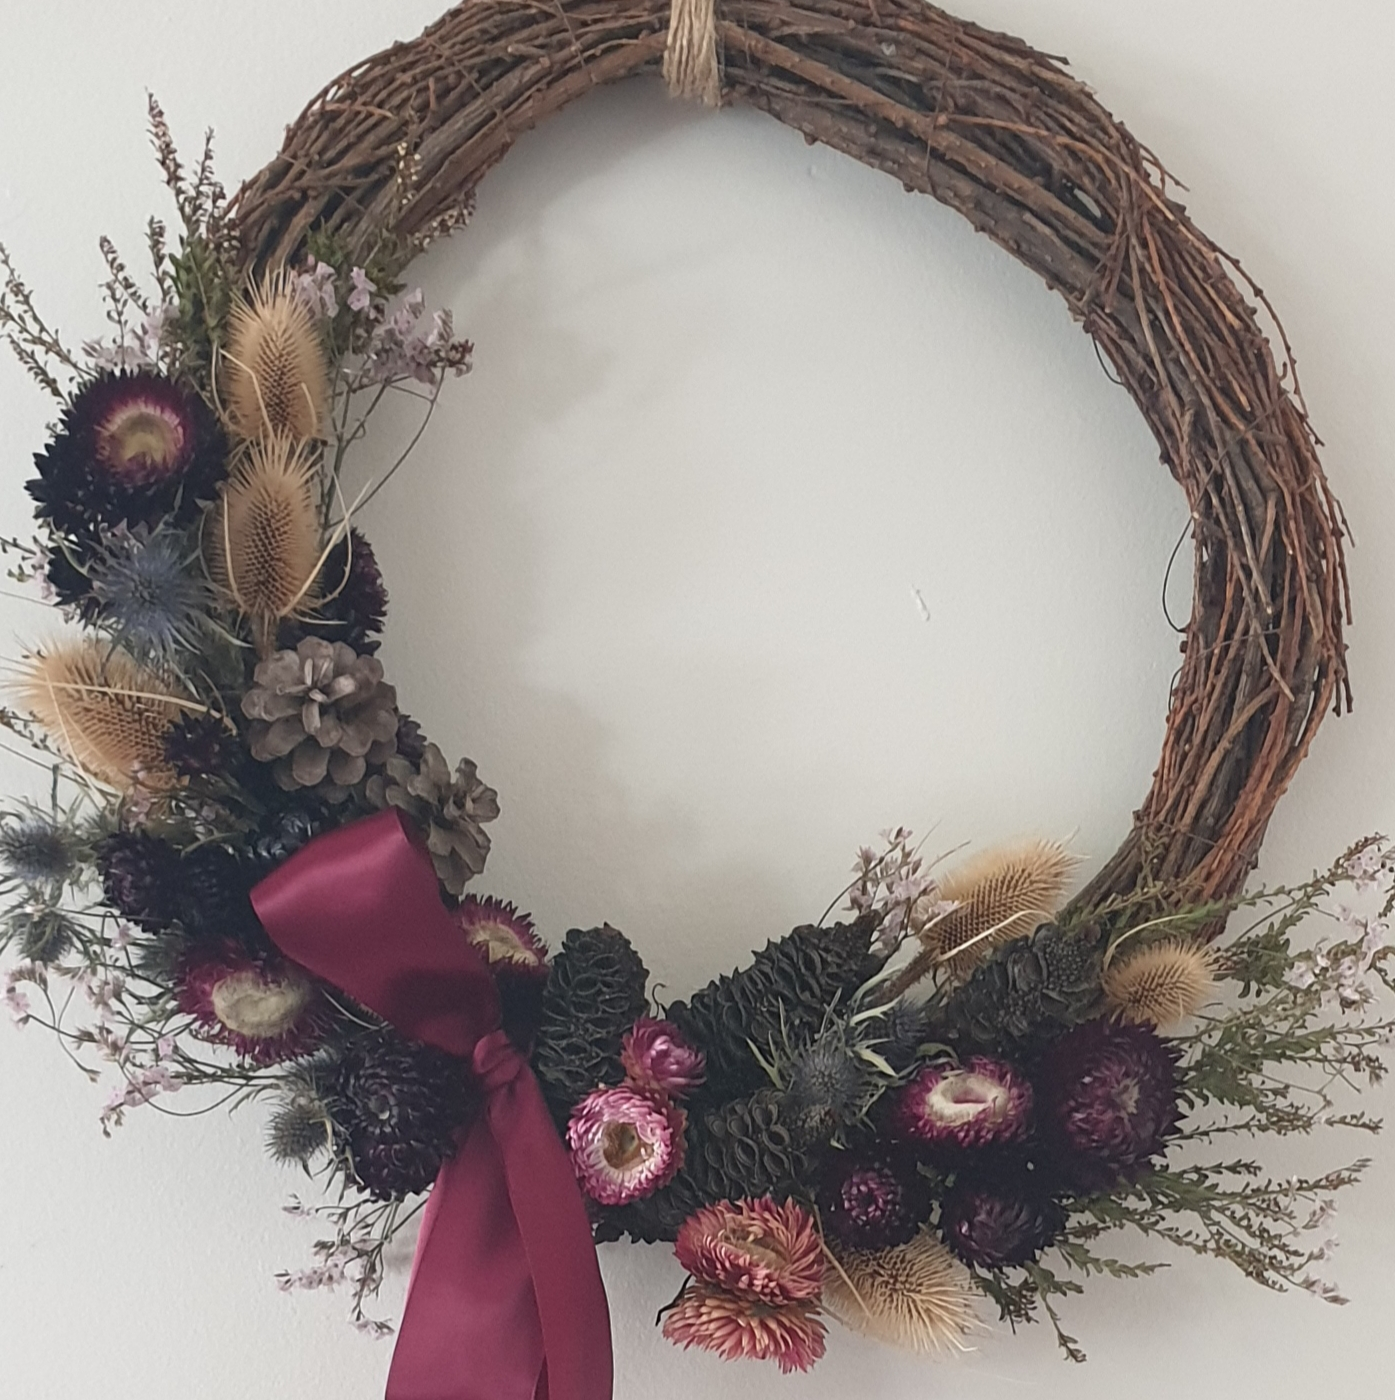 Festive Floral Wreath Making